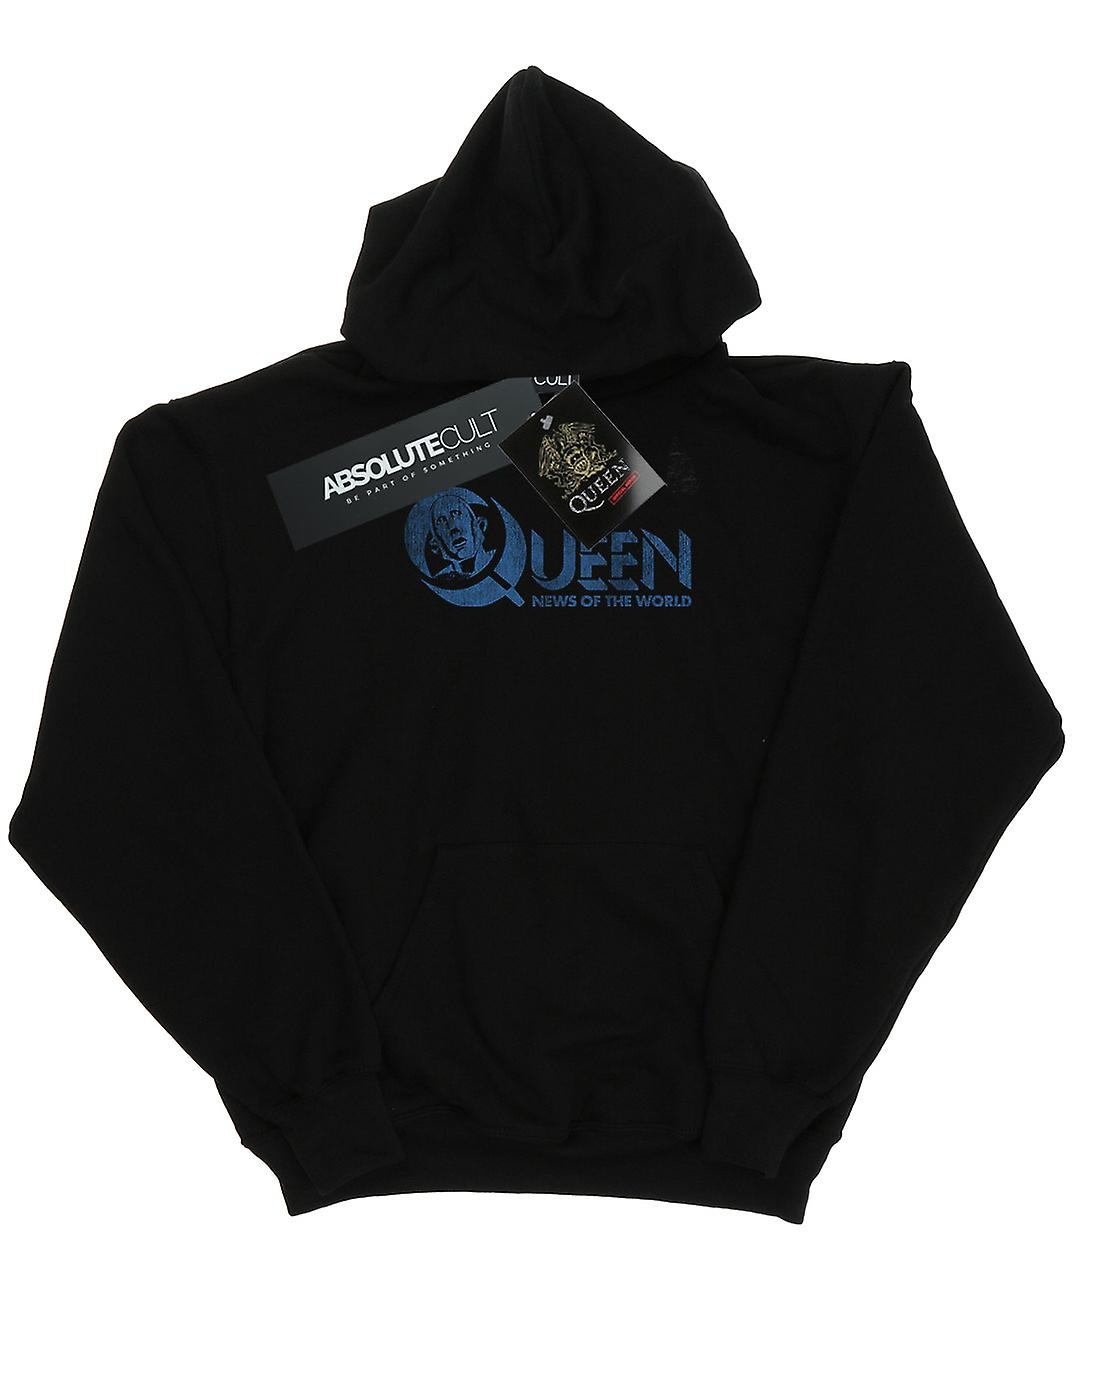 Queen Women's Distressed News Of The World Hoodie